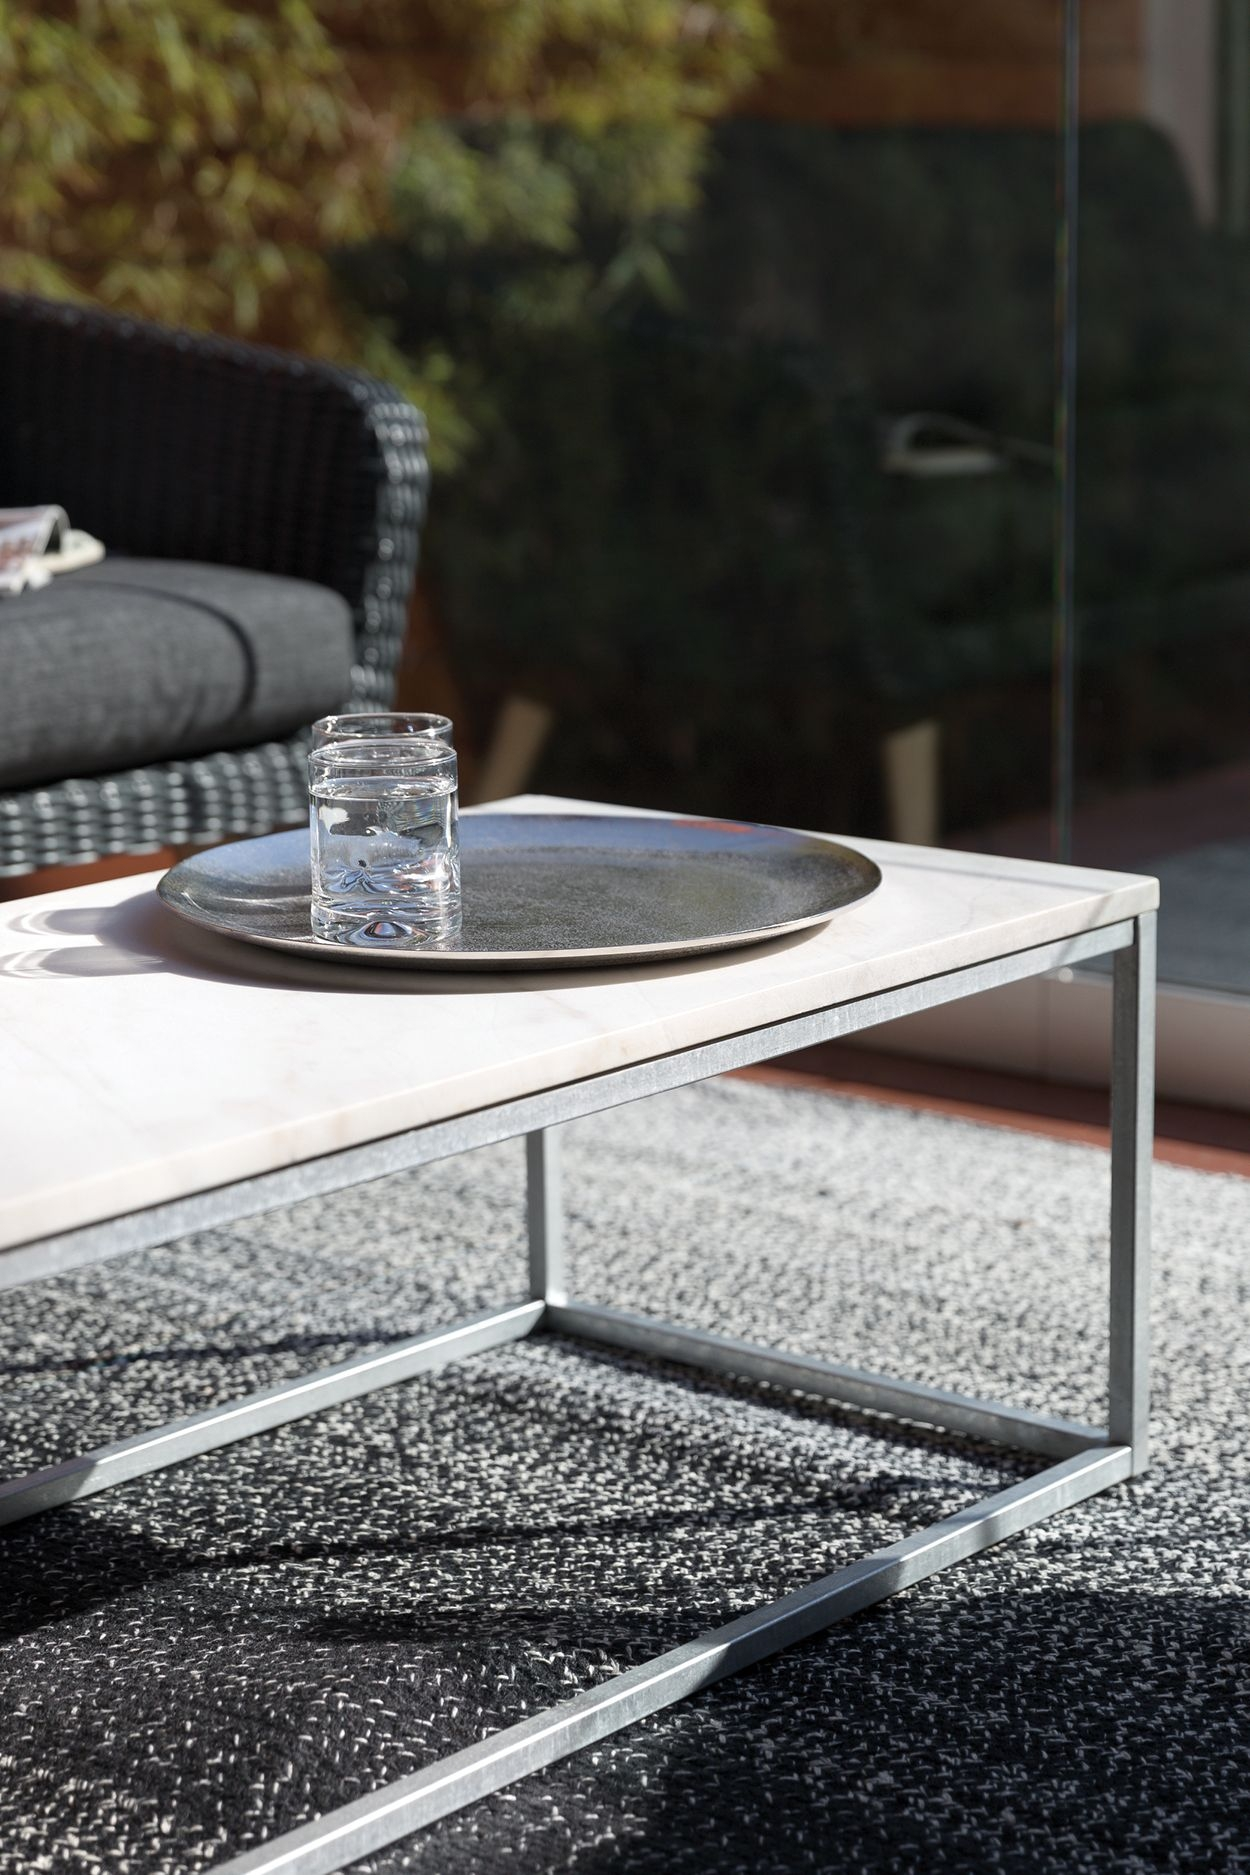 Fanciable Glass Contemporary Coffee Table On Prodigious Suited to Your Upscale Apartment or Your Rooftop Patio the On Glass Contemporary Coffee Table